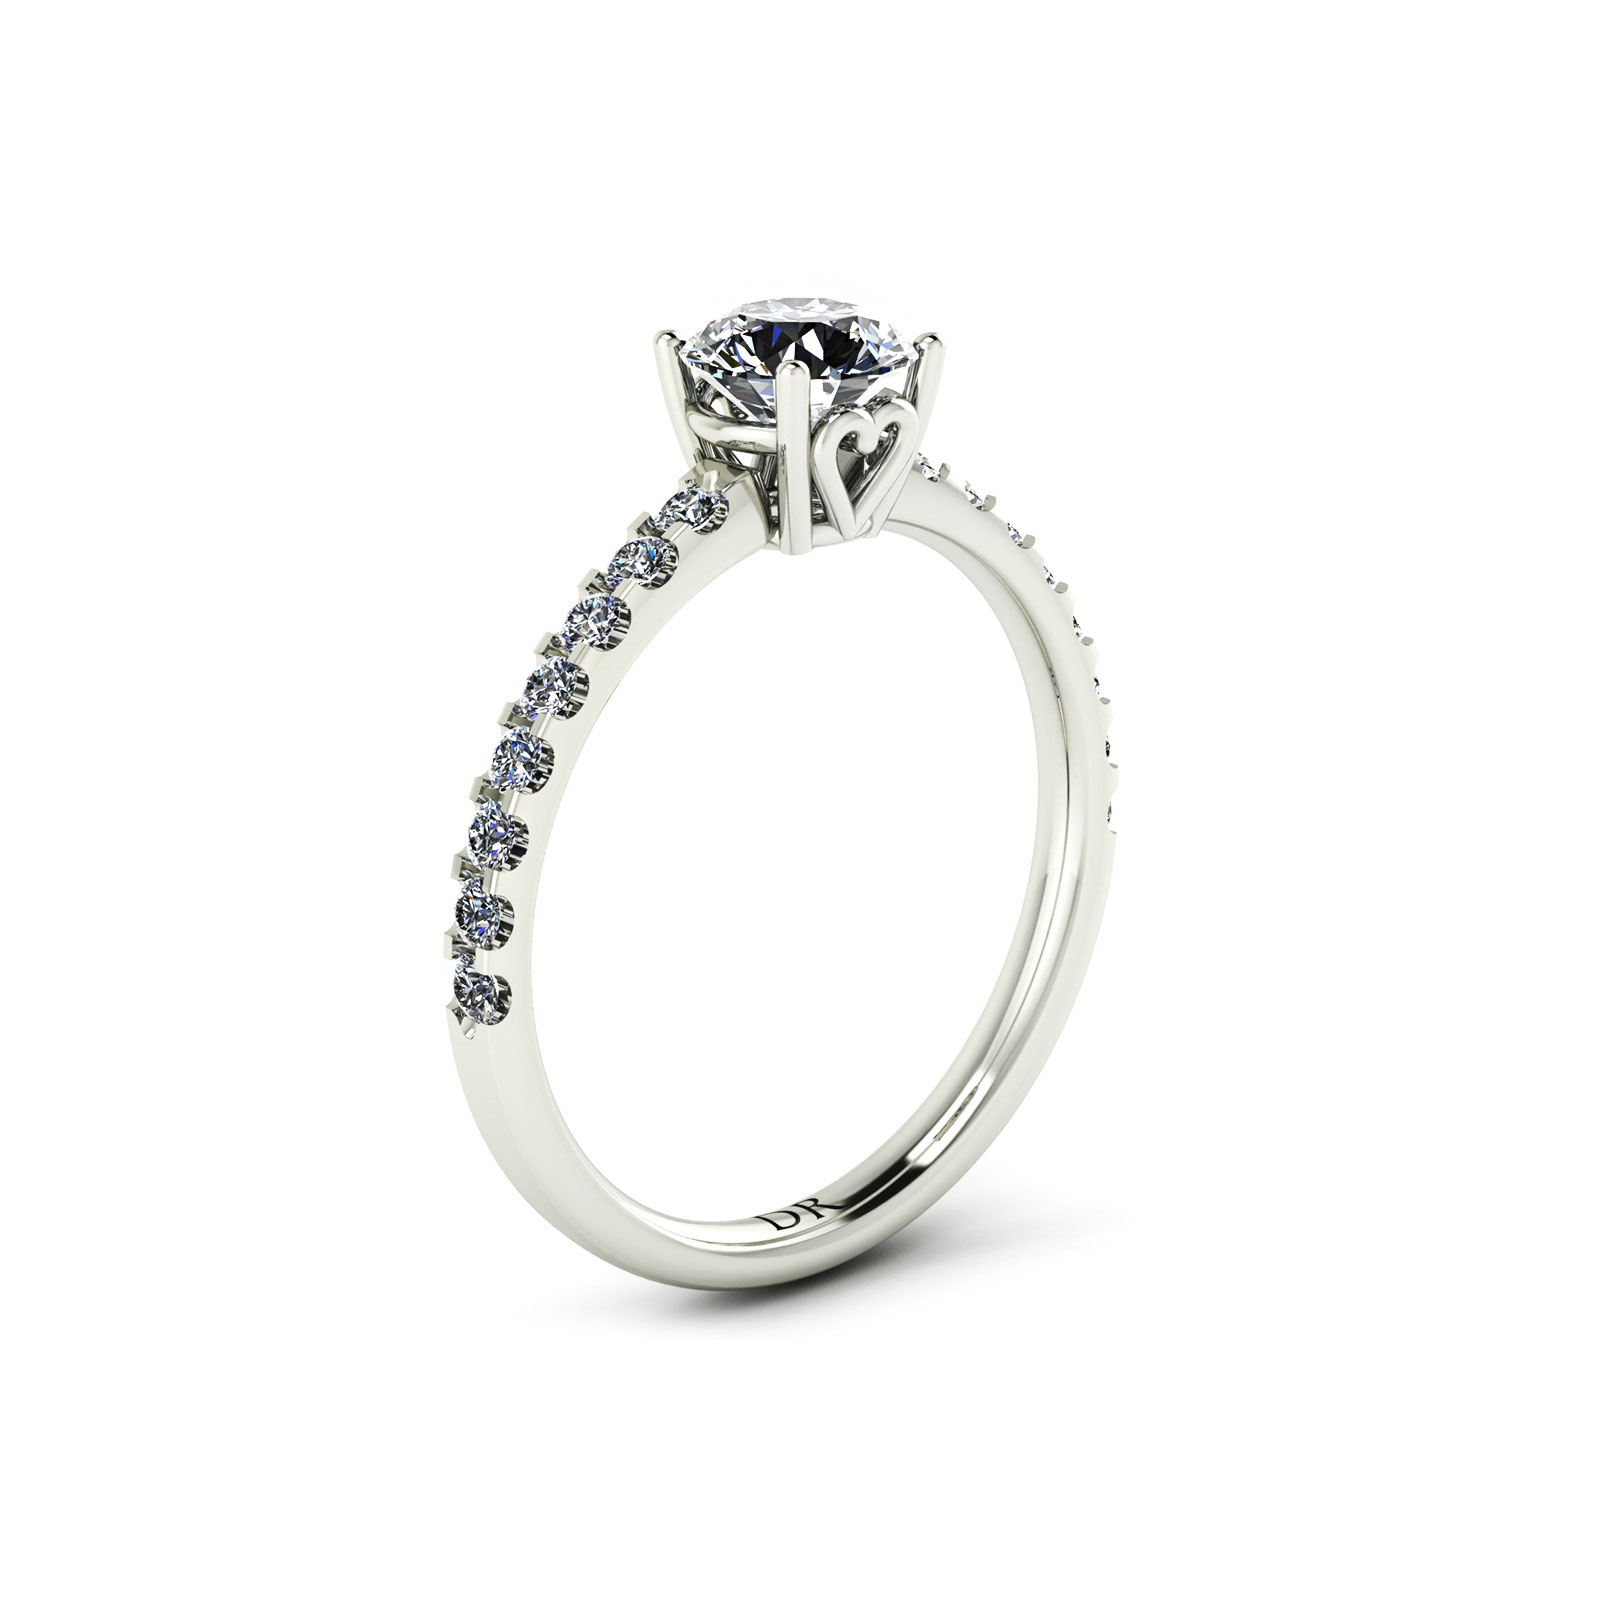 Draco Engagement Ring (perspective view) - Draco Diamonds